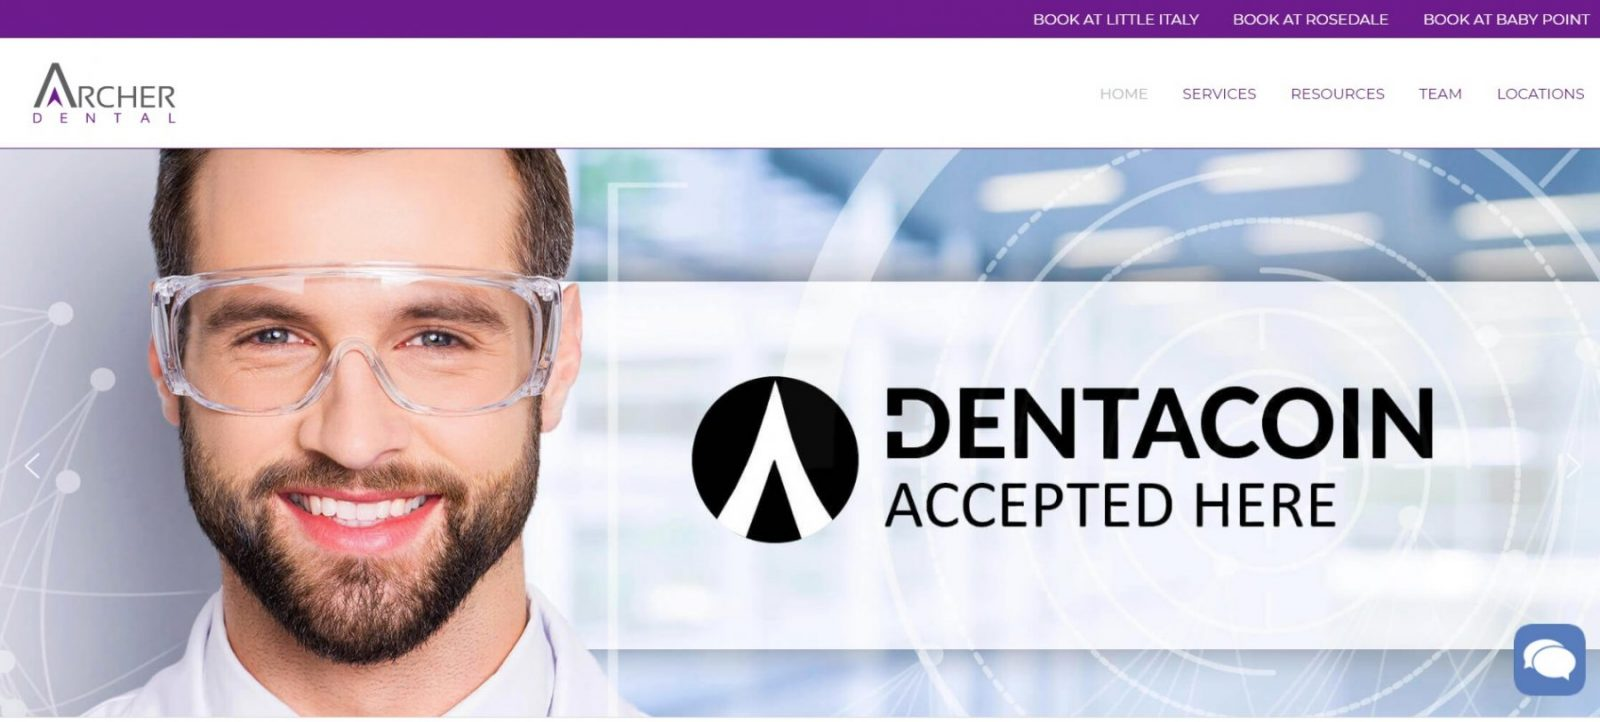 Archer Dental Dentacoin Canada first practice